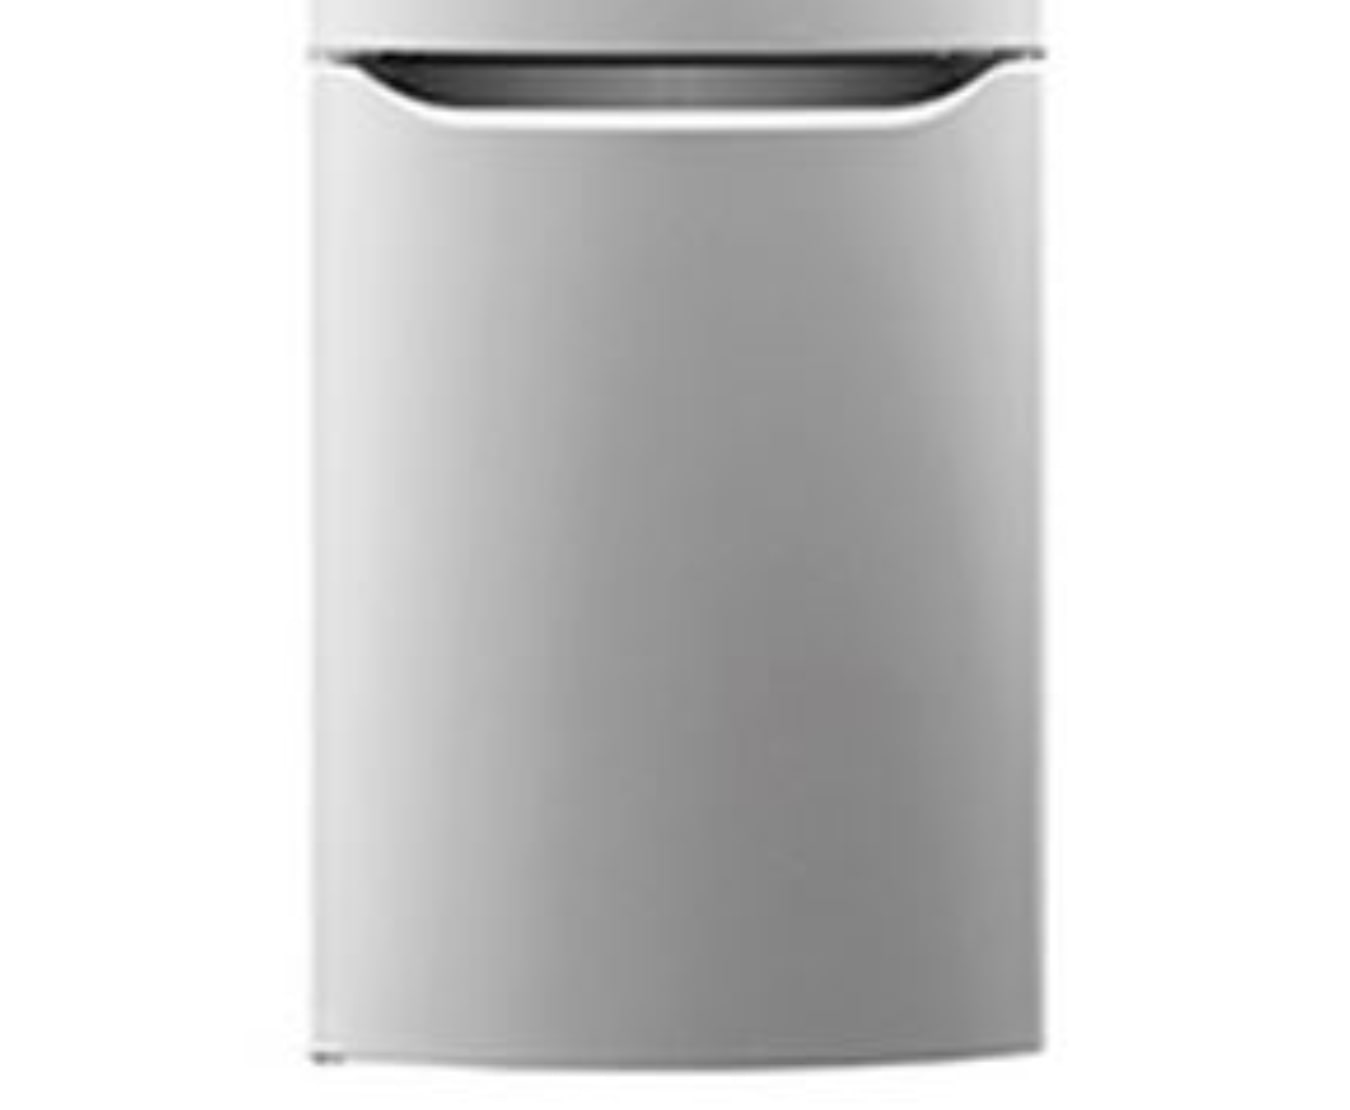 LG Fridge Freezers GC-B409SVCK thumbnail 4